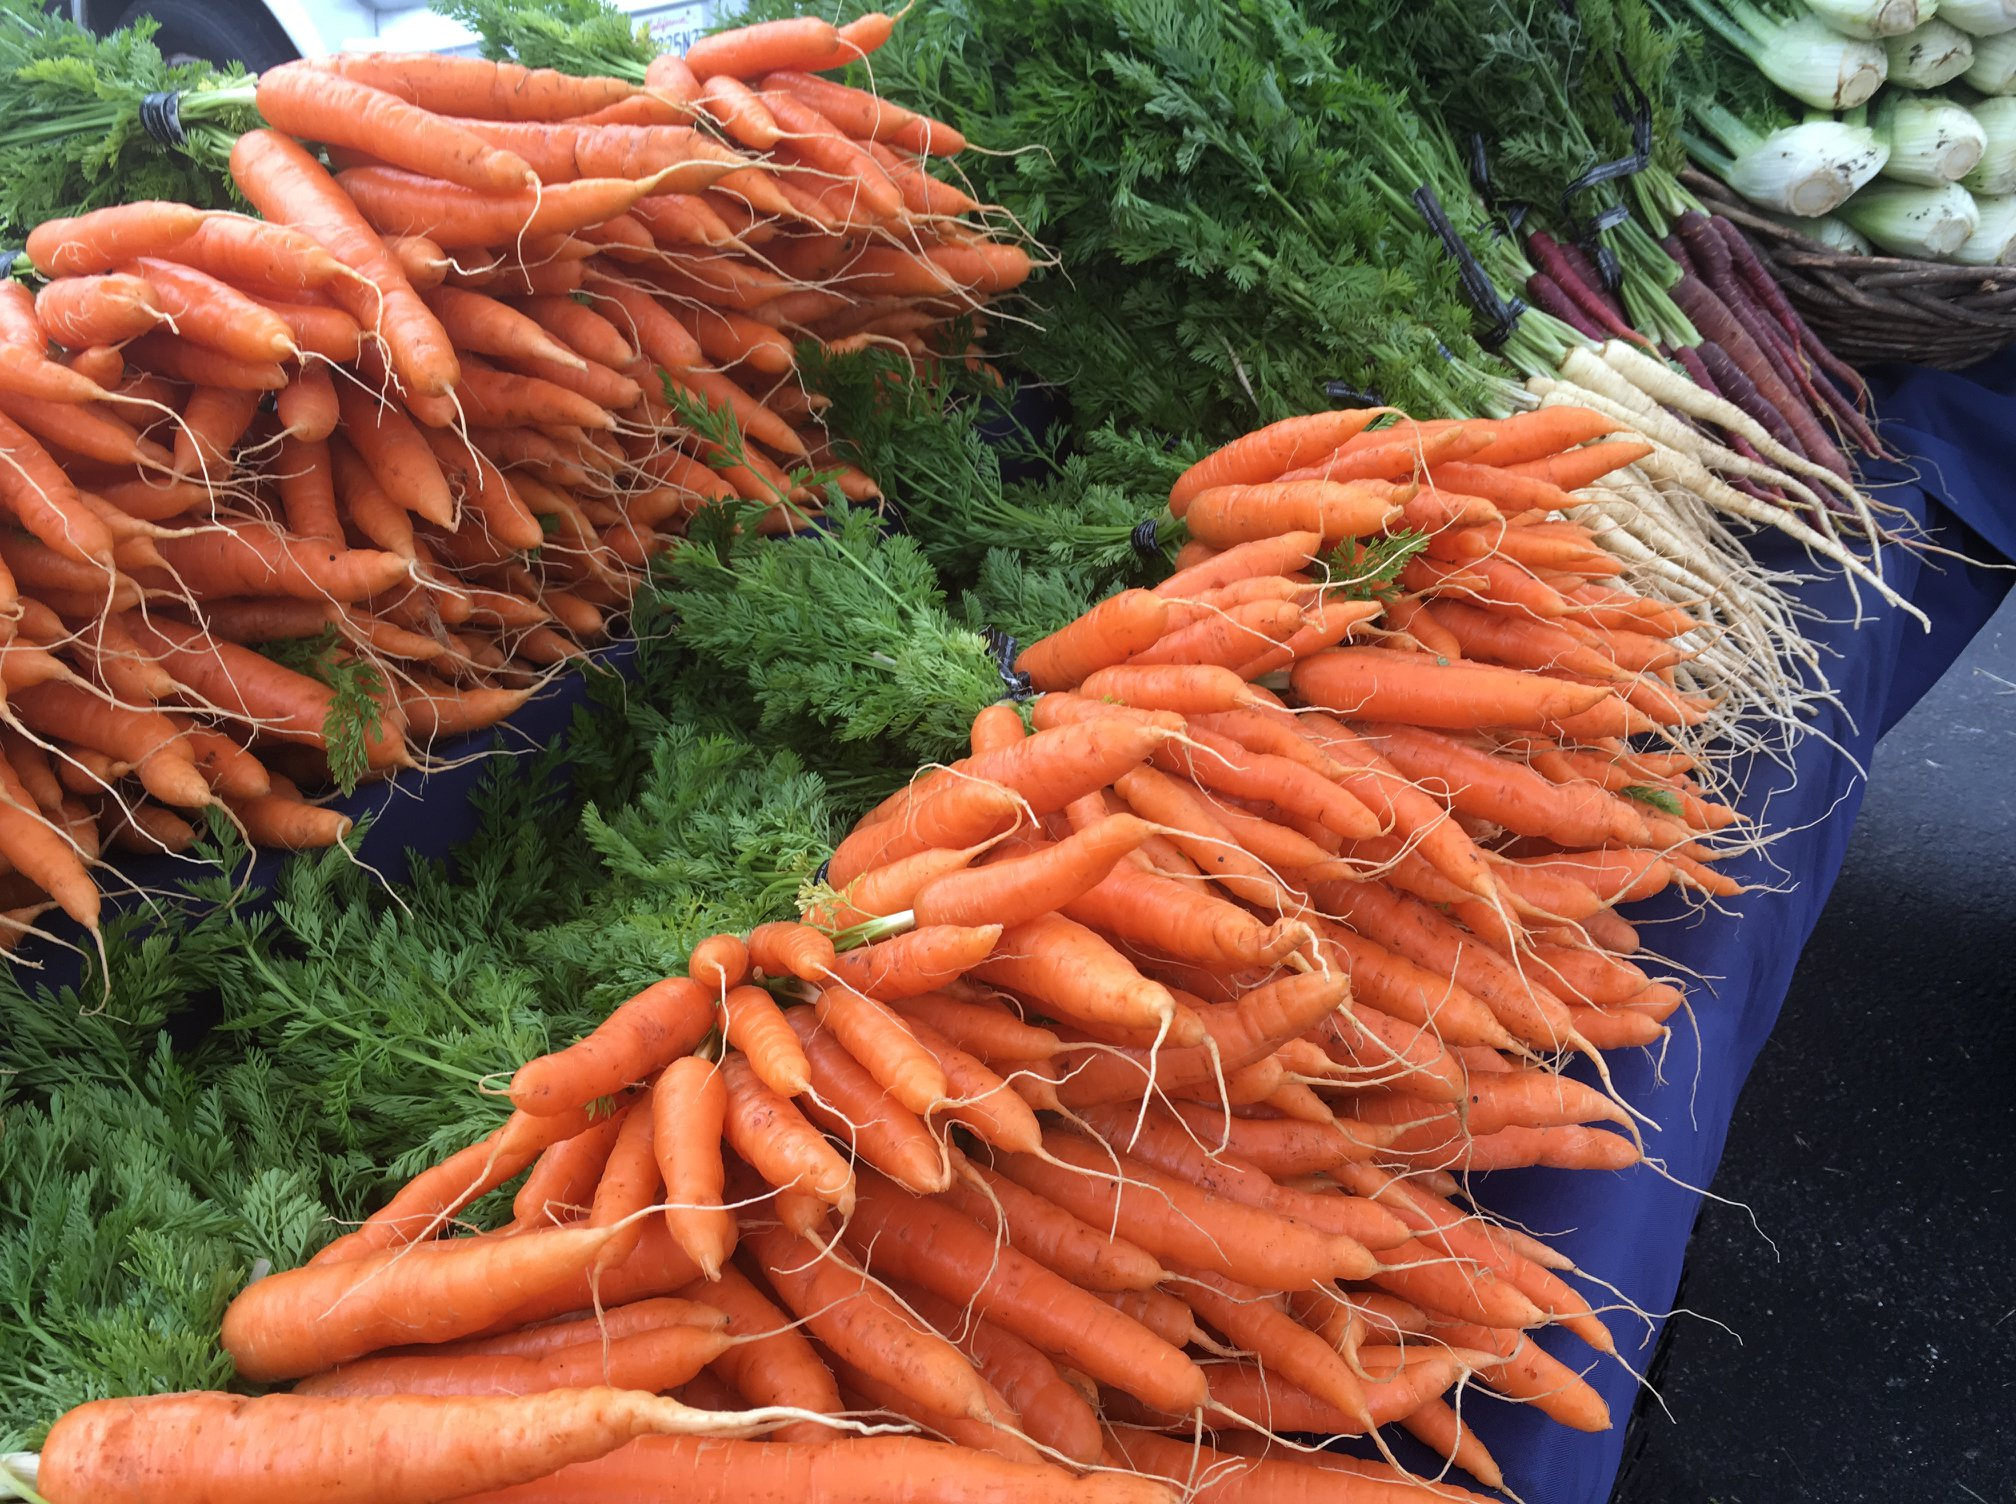 You can always find Nantes Carrots in our booth! The sweetest carrots around!